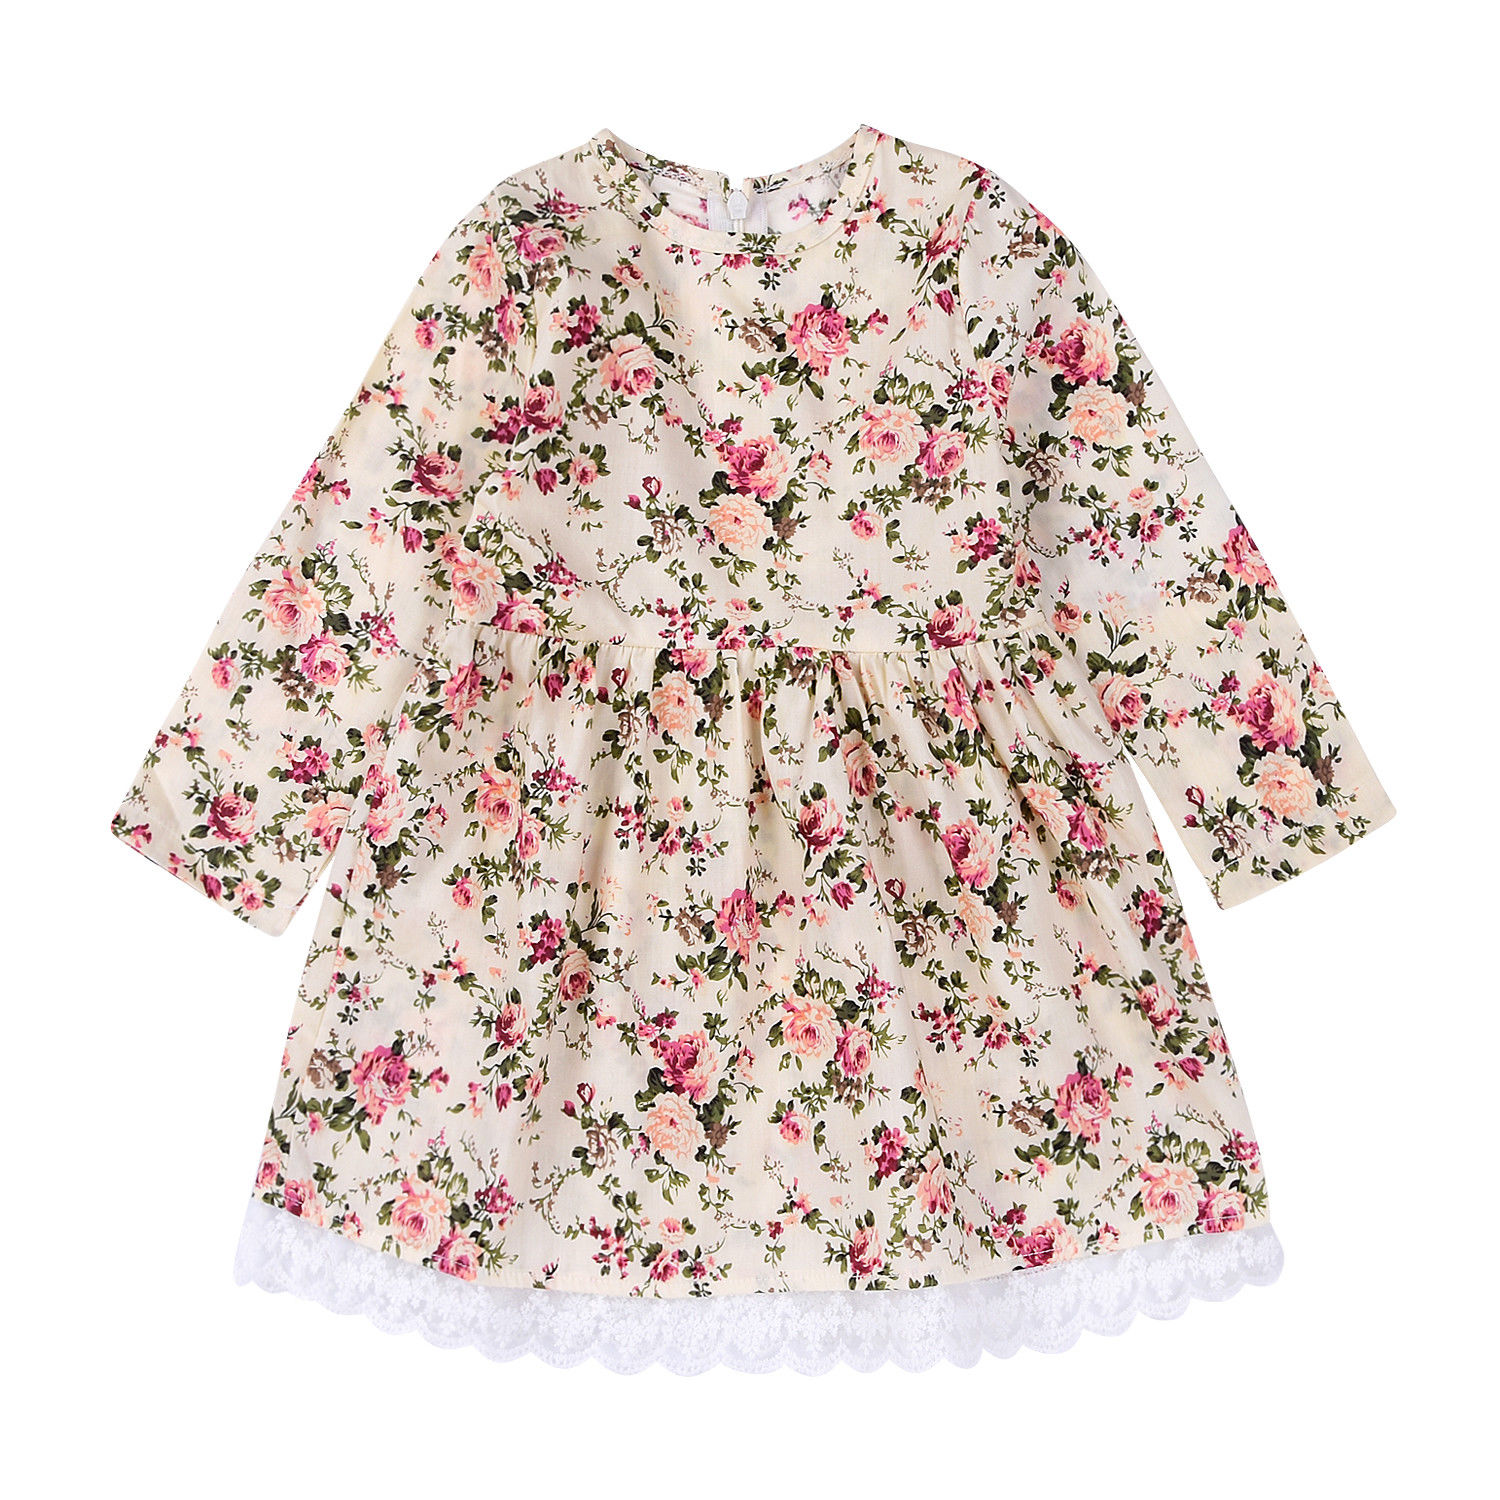 Pretty Girls Dress Floral Toddler Girl Baby Dress Long Sleeve Princess Party Pageant Dresses Kids Girls Lace Mini Dresses 1-6T adorable baby girl and toddler girl formal dress little girl pageant dresses girl brand clothes 1t 6t g284a